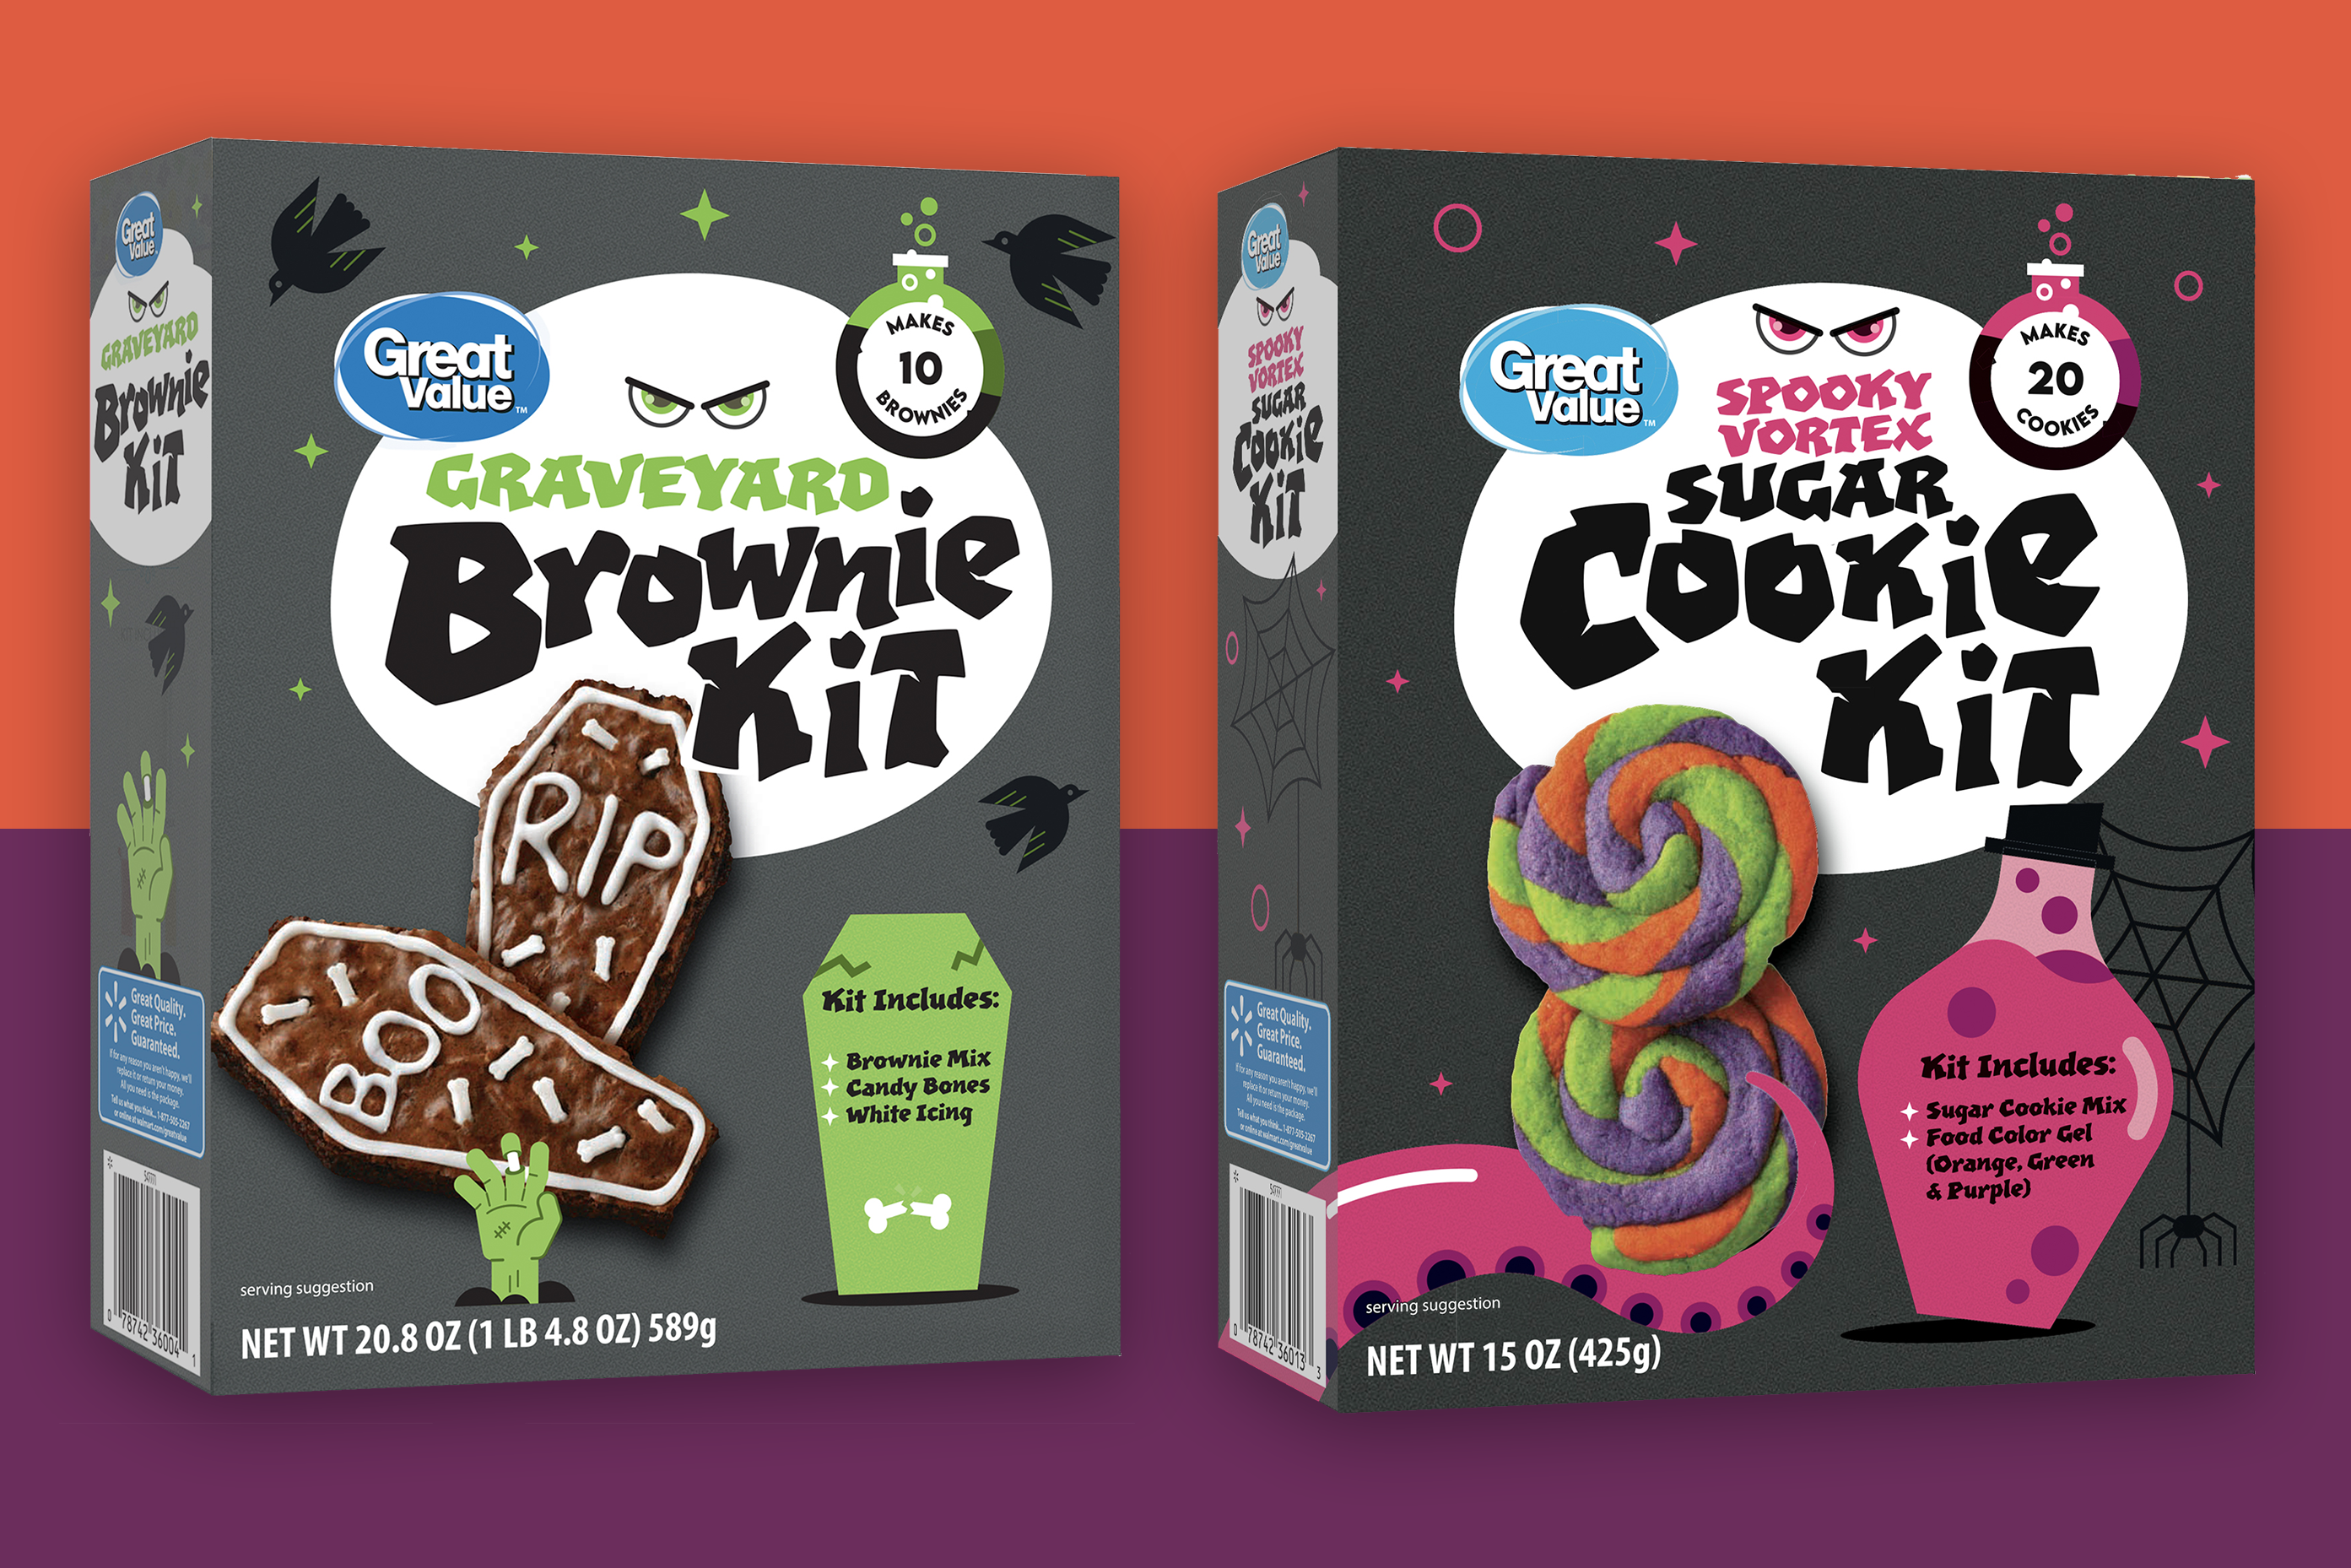 Two boxes of Walmart's Great Value Brownie Mix and Sugar Cookie Mix